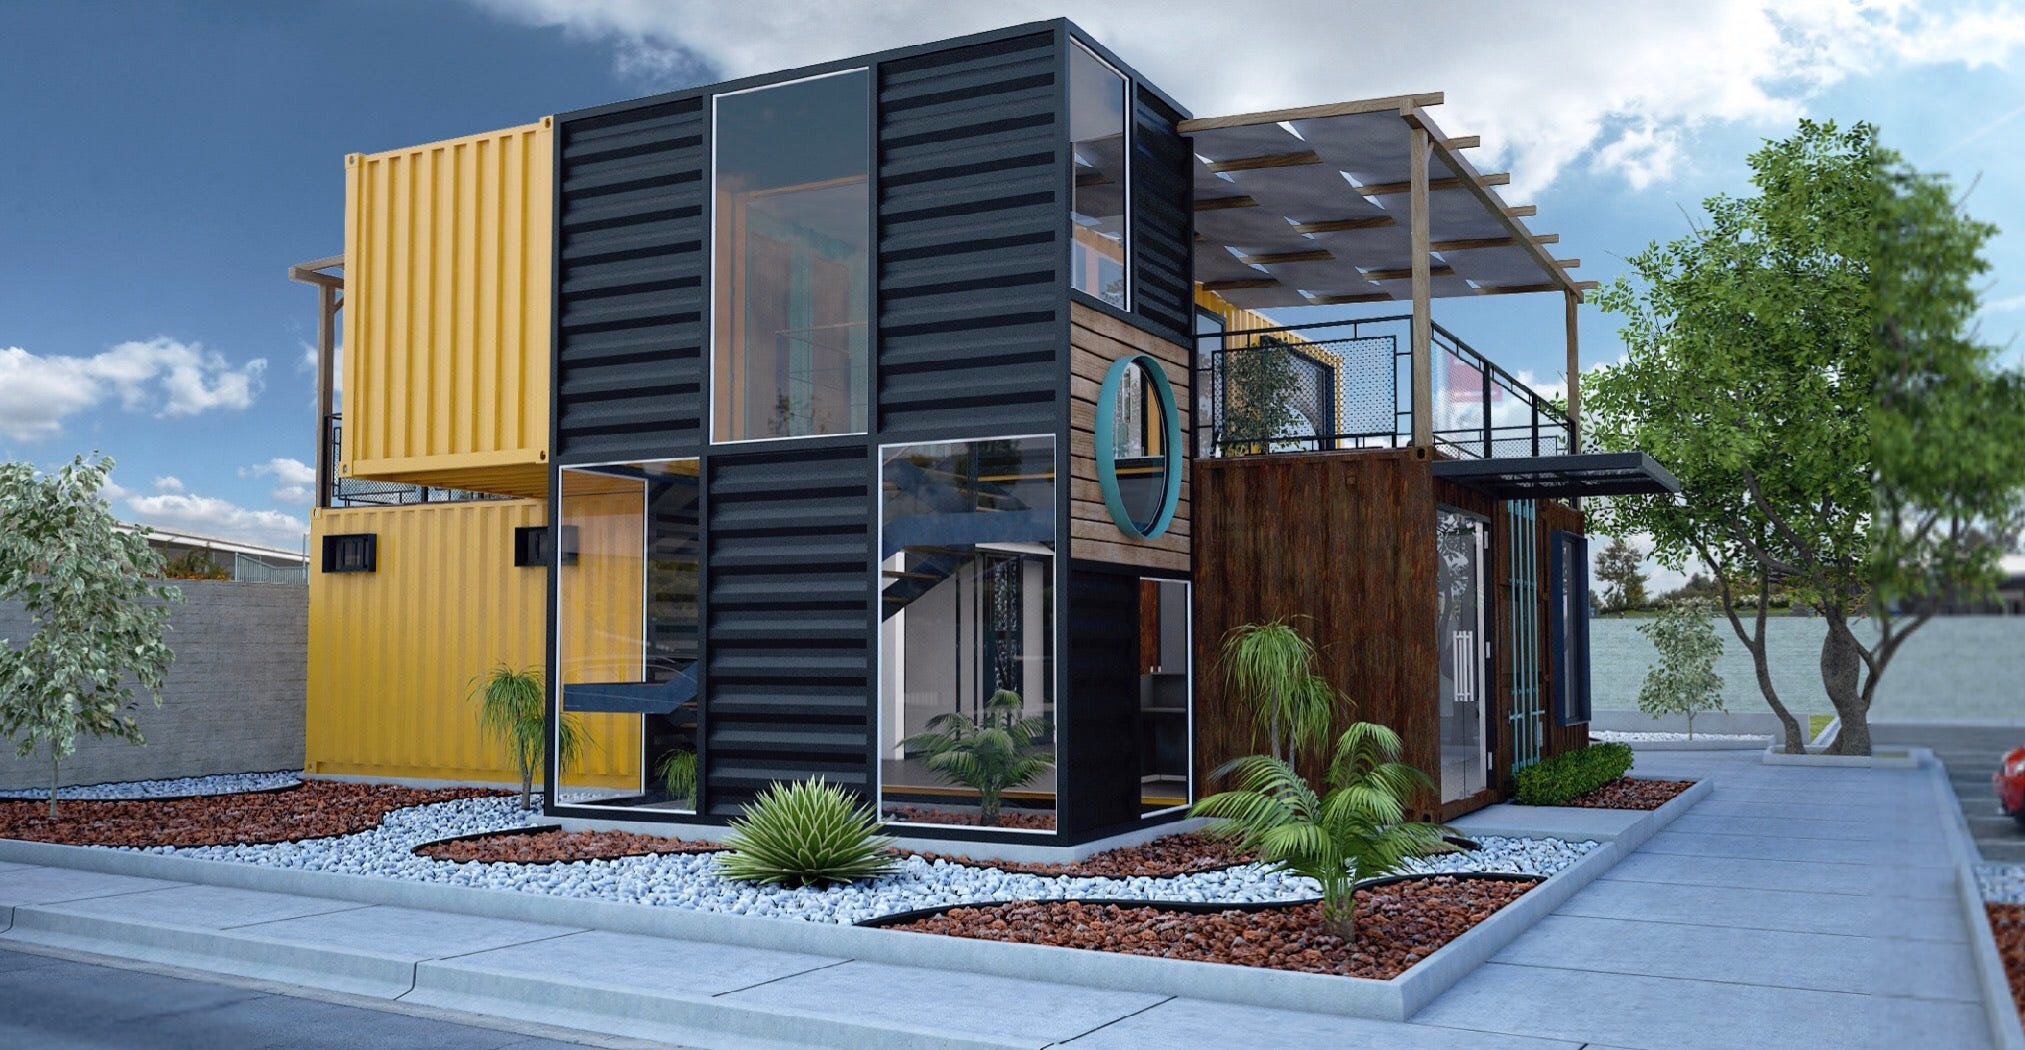 Shipping container office building Used Housing Why This Las Cruces Realtor Is Building Her New Office Out Of Old Shipping Containers Behance Las Cruces Realtor Building New Office Out Of Old Shipping Containers